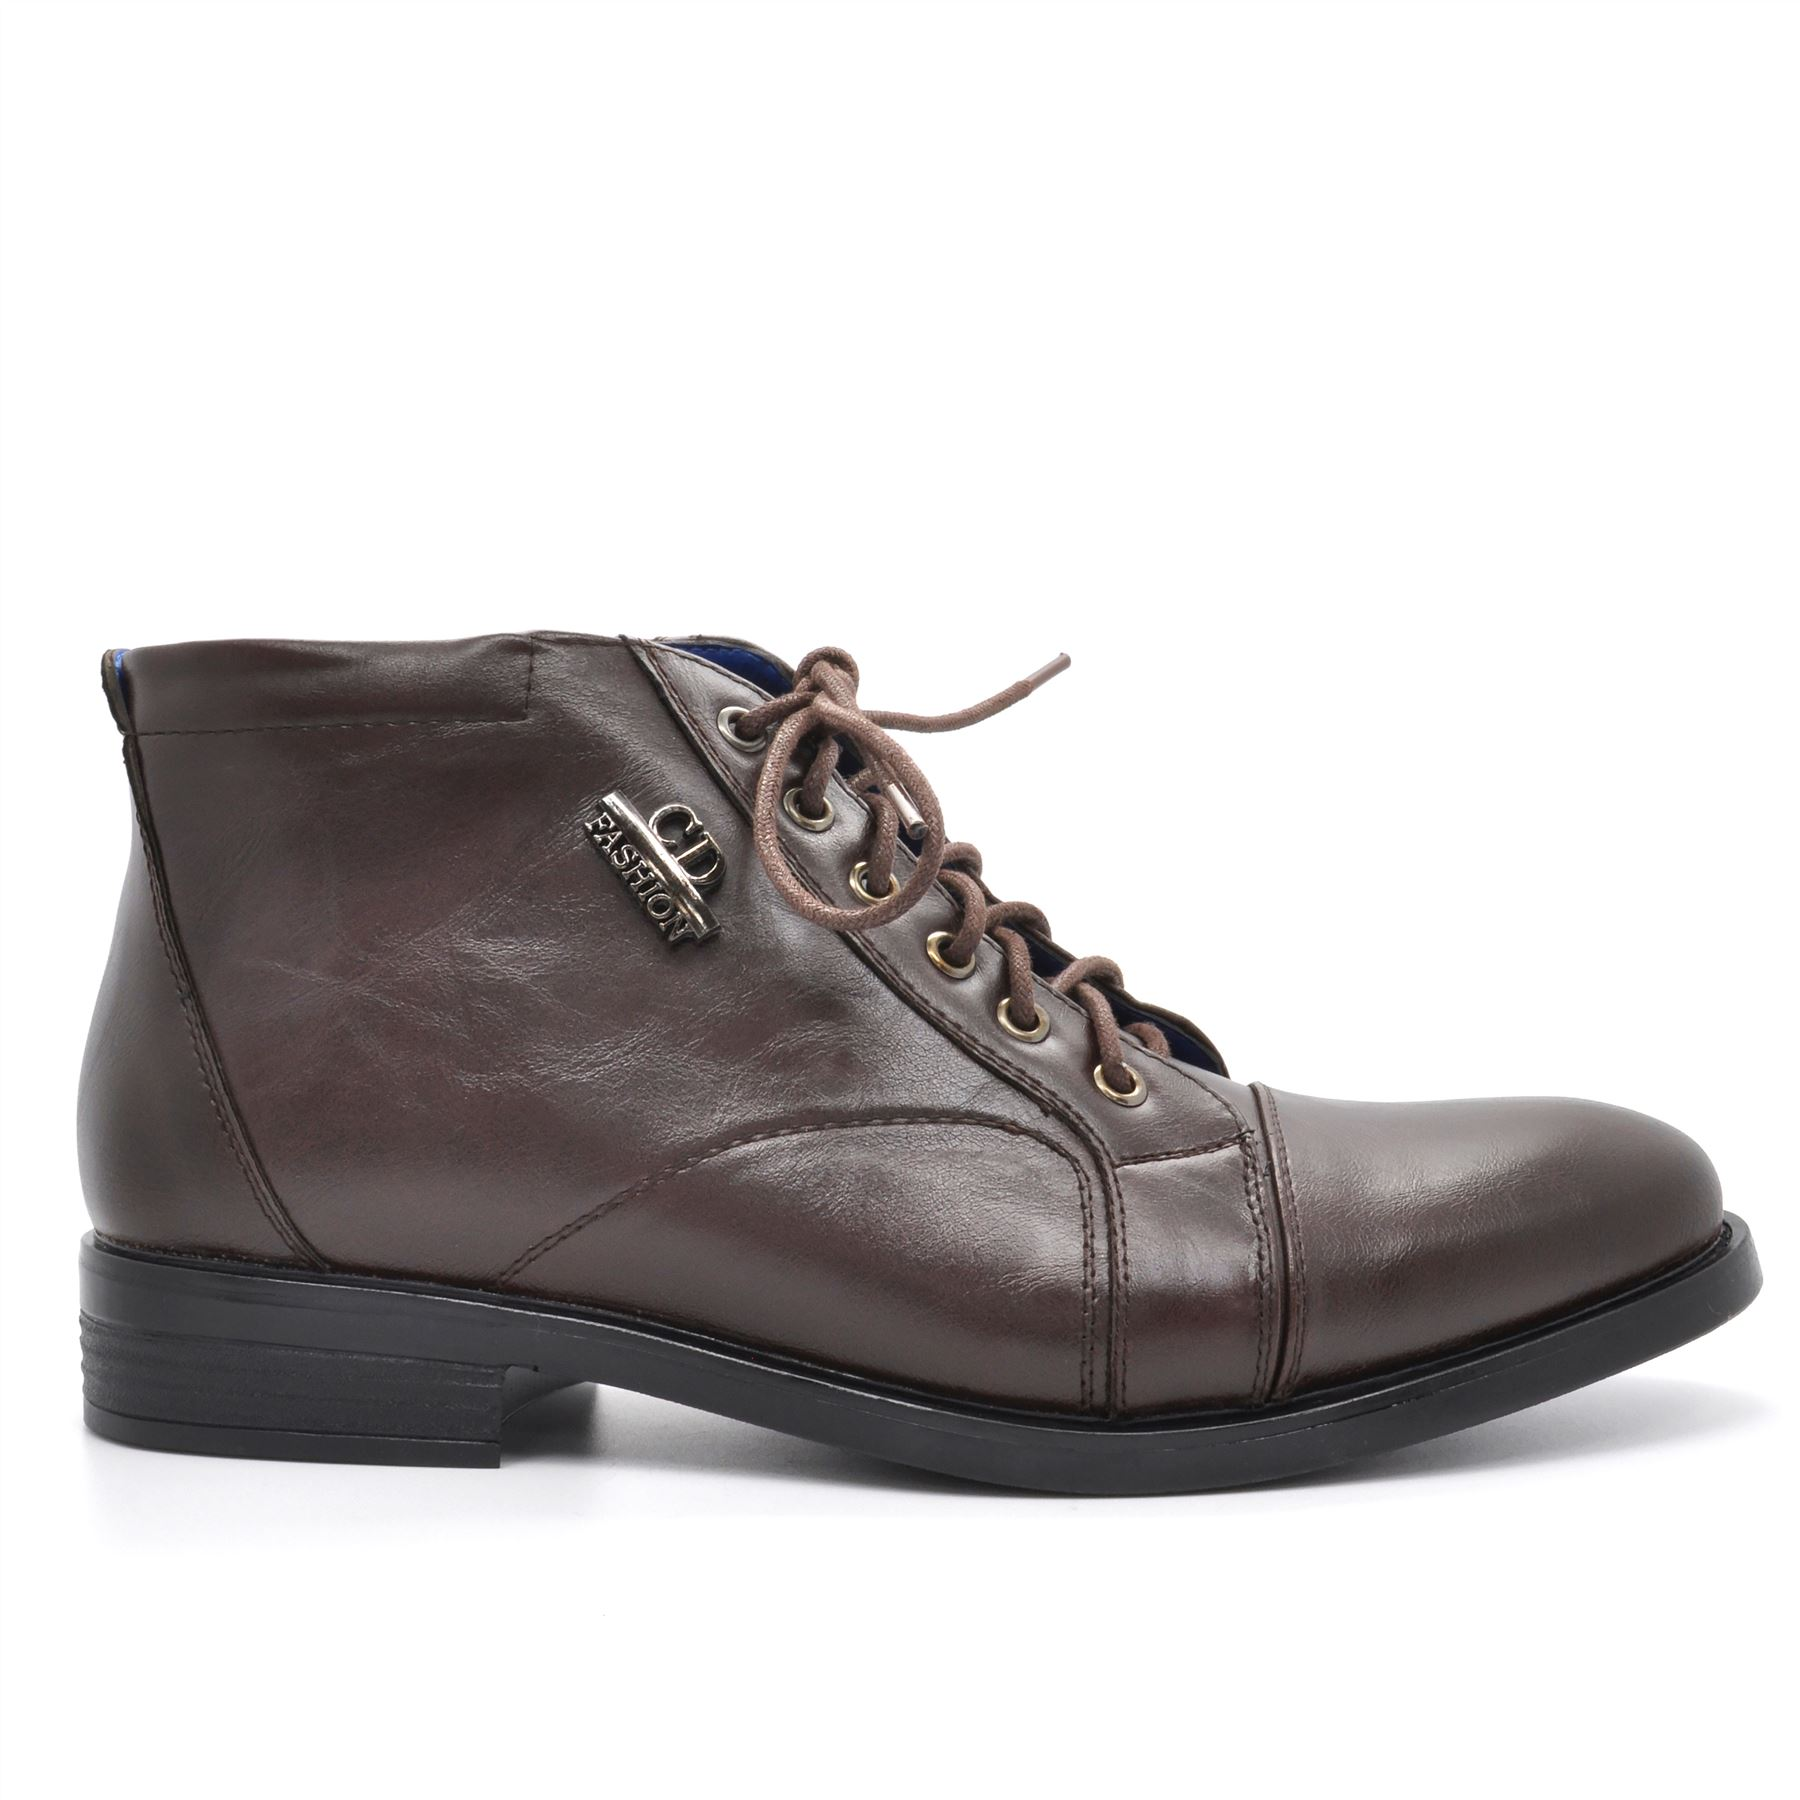 new mens casual suede leather desert ankle boots smart